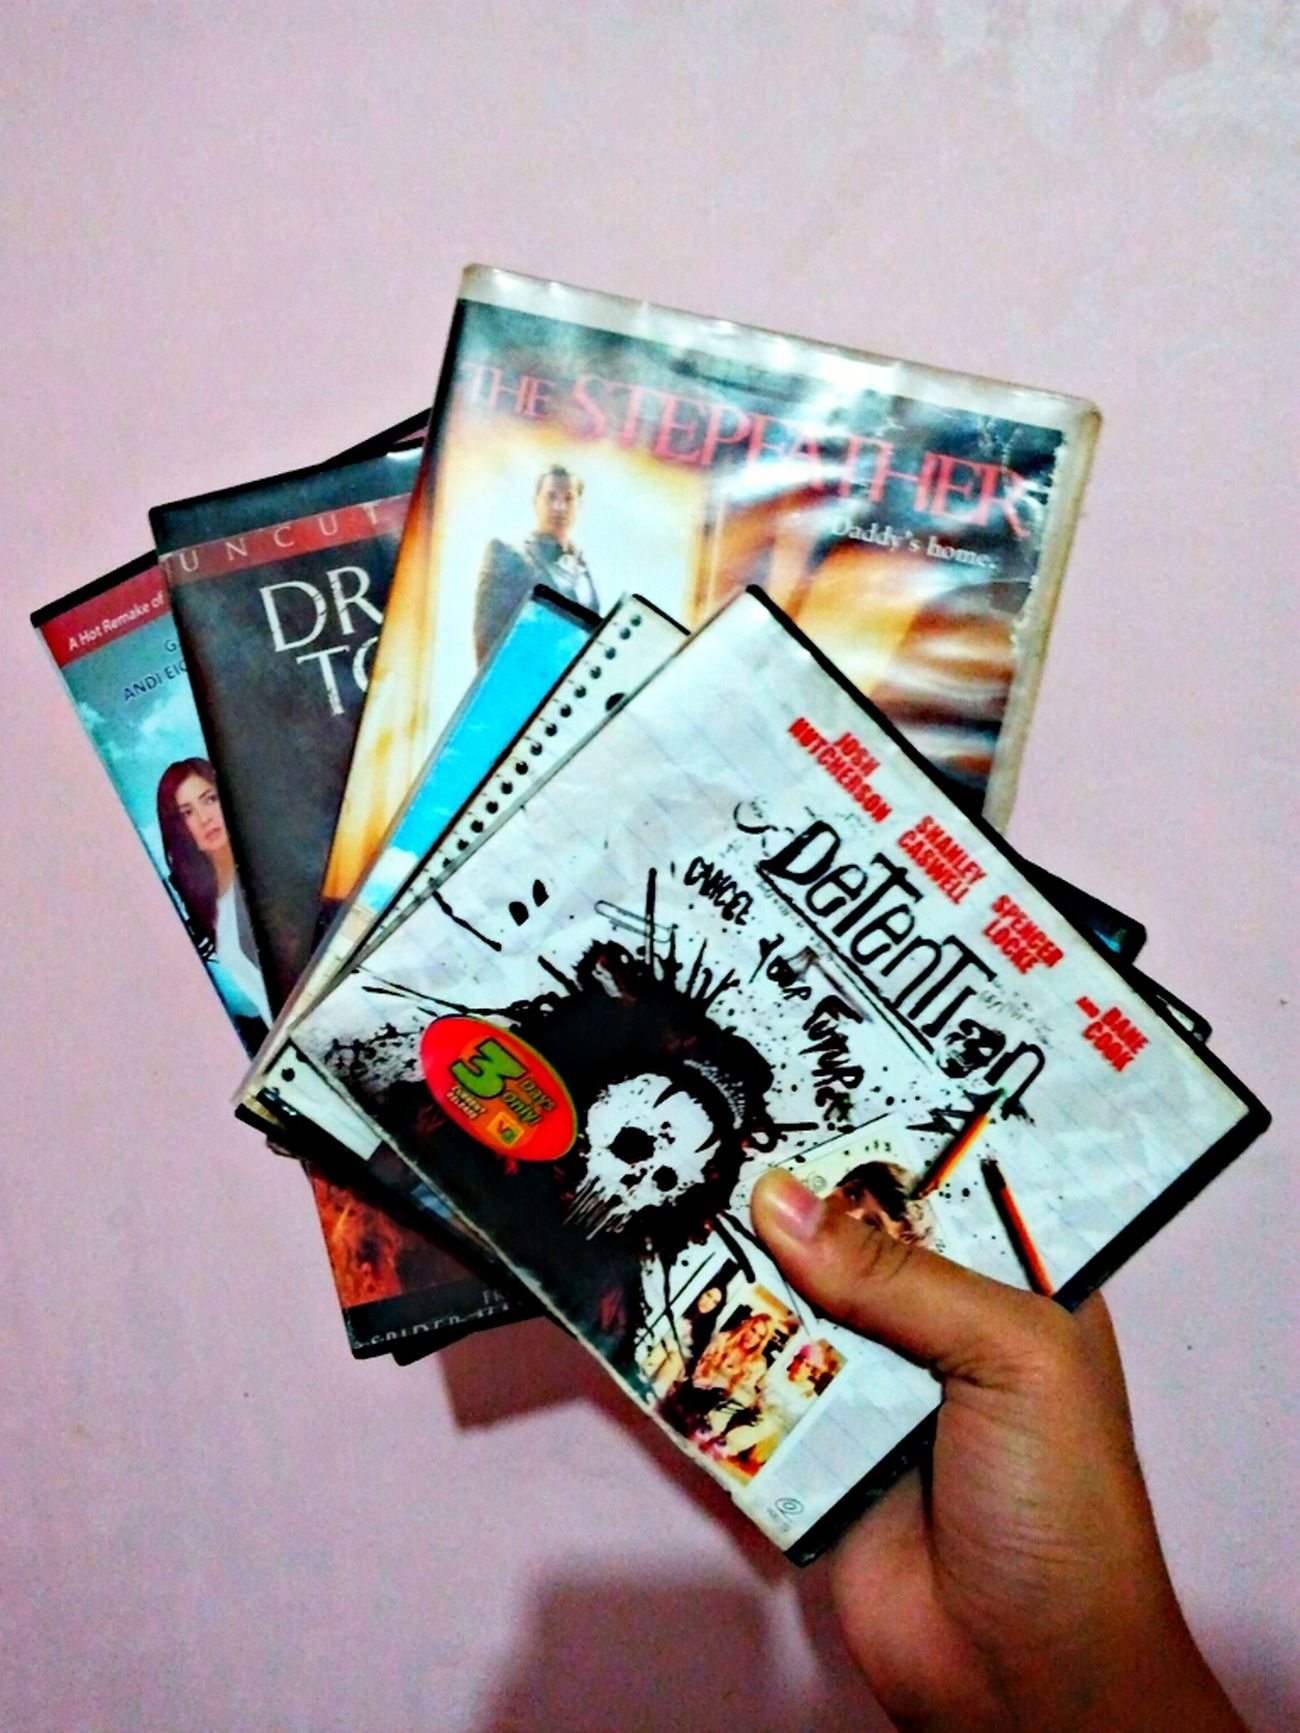 Dvds Moviemrathon Hoe Sleepover ❤